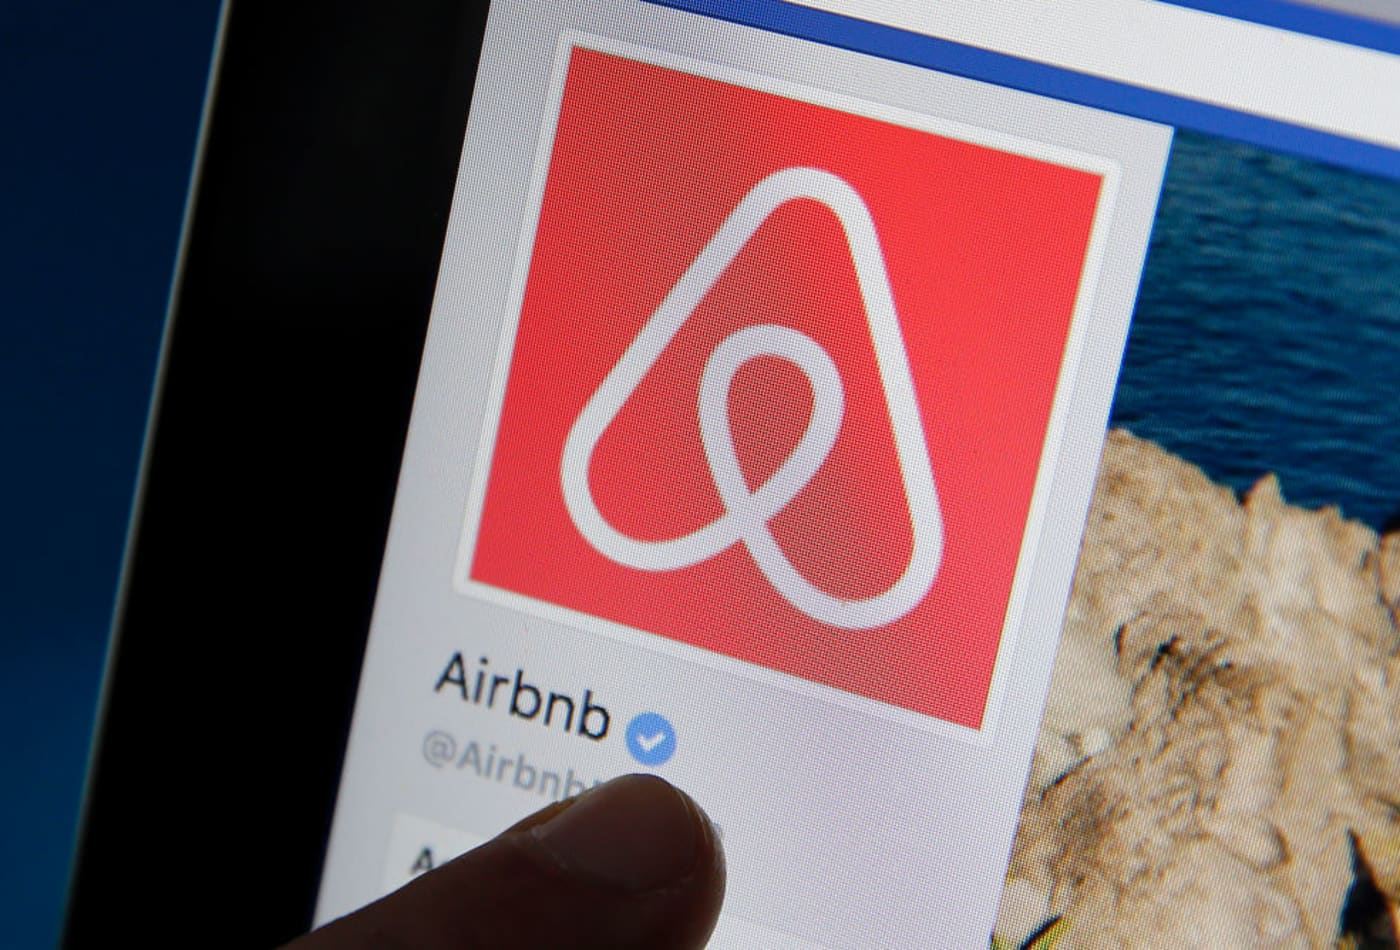 Airbnb's quarterly loss reportedly doubled in Q1, a bad sign as investors grow wary of money-losers